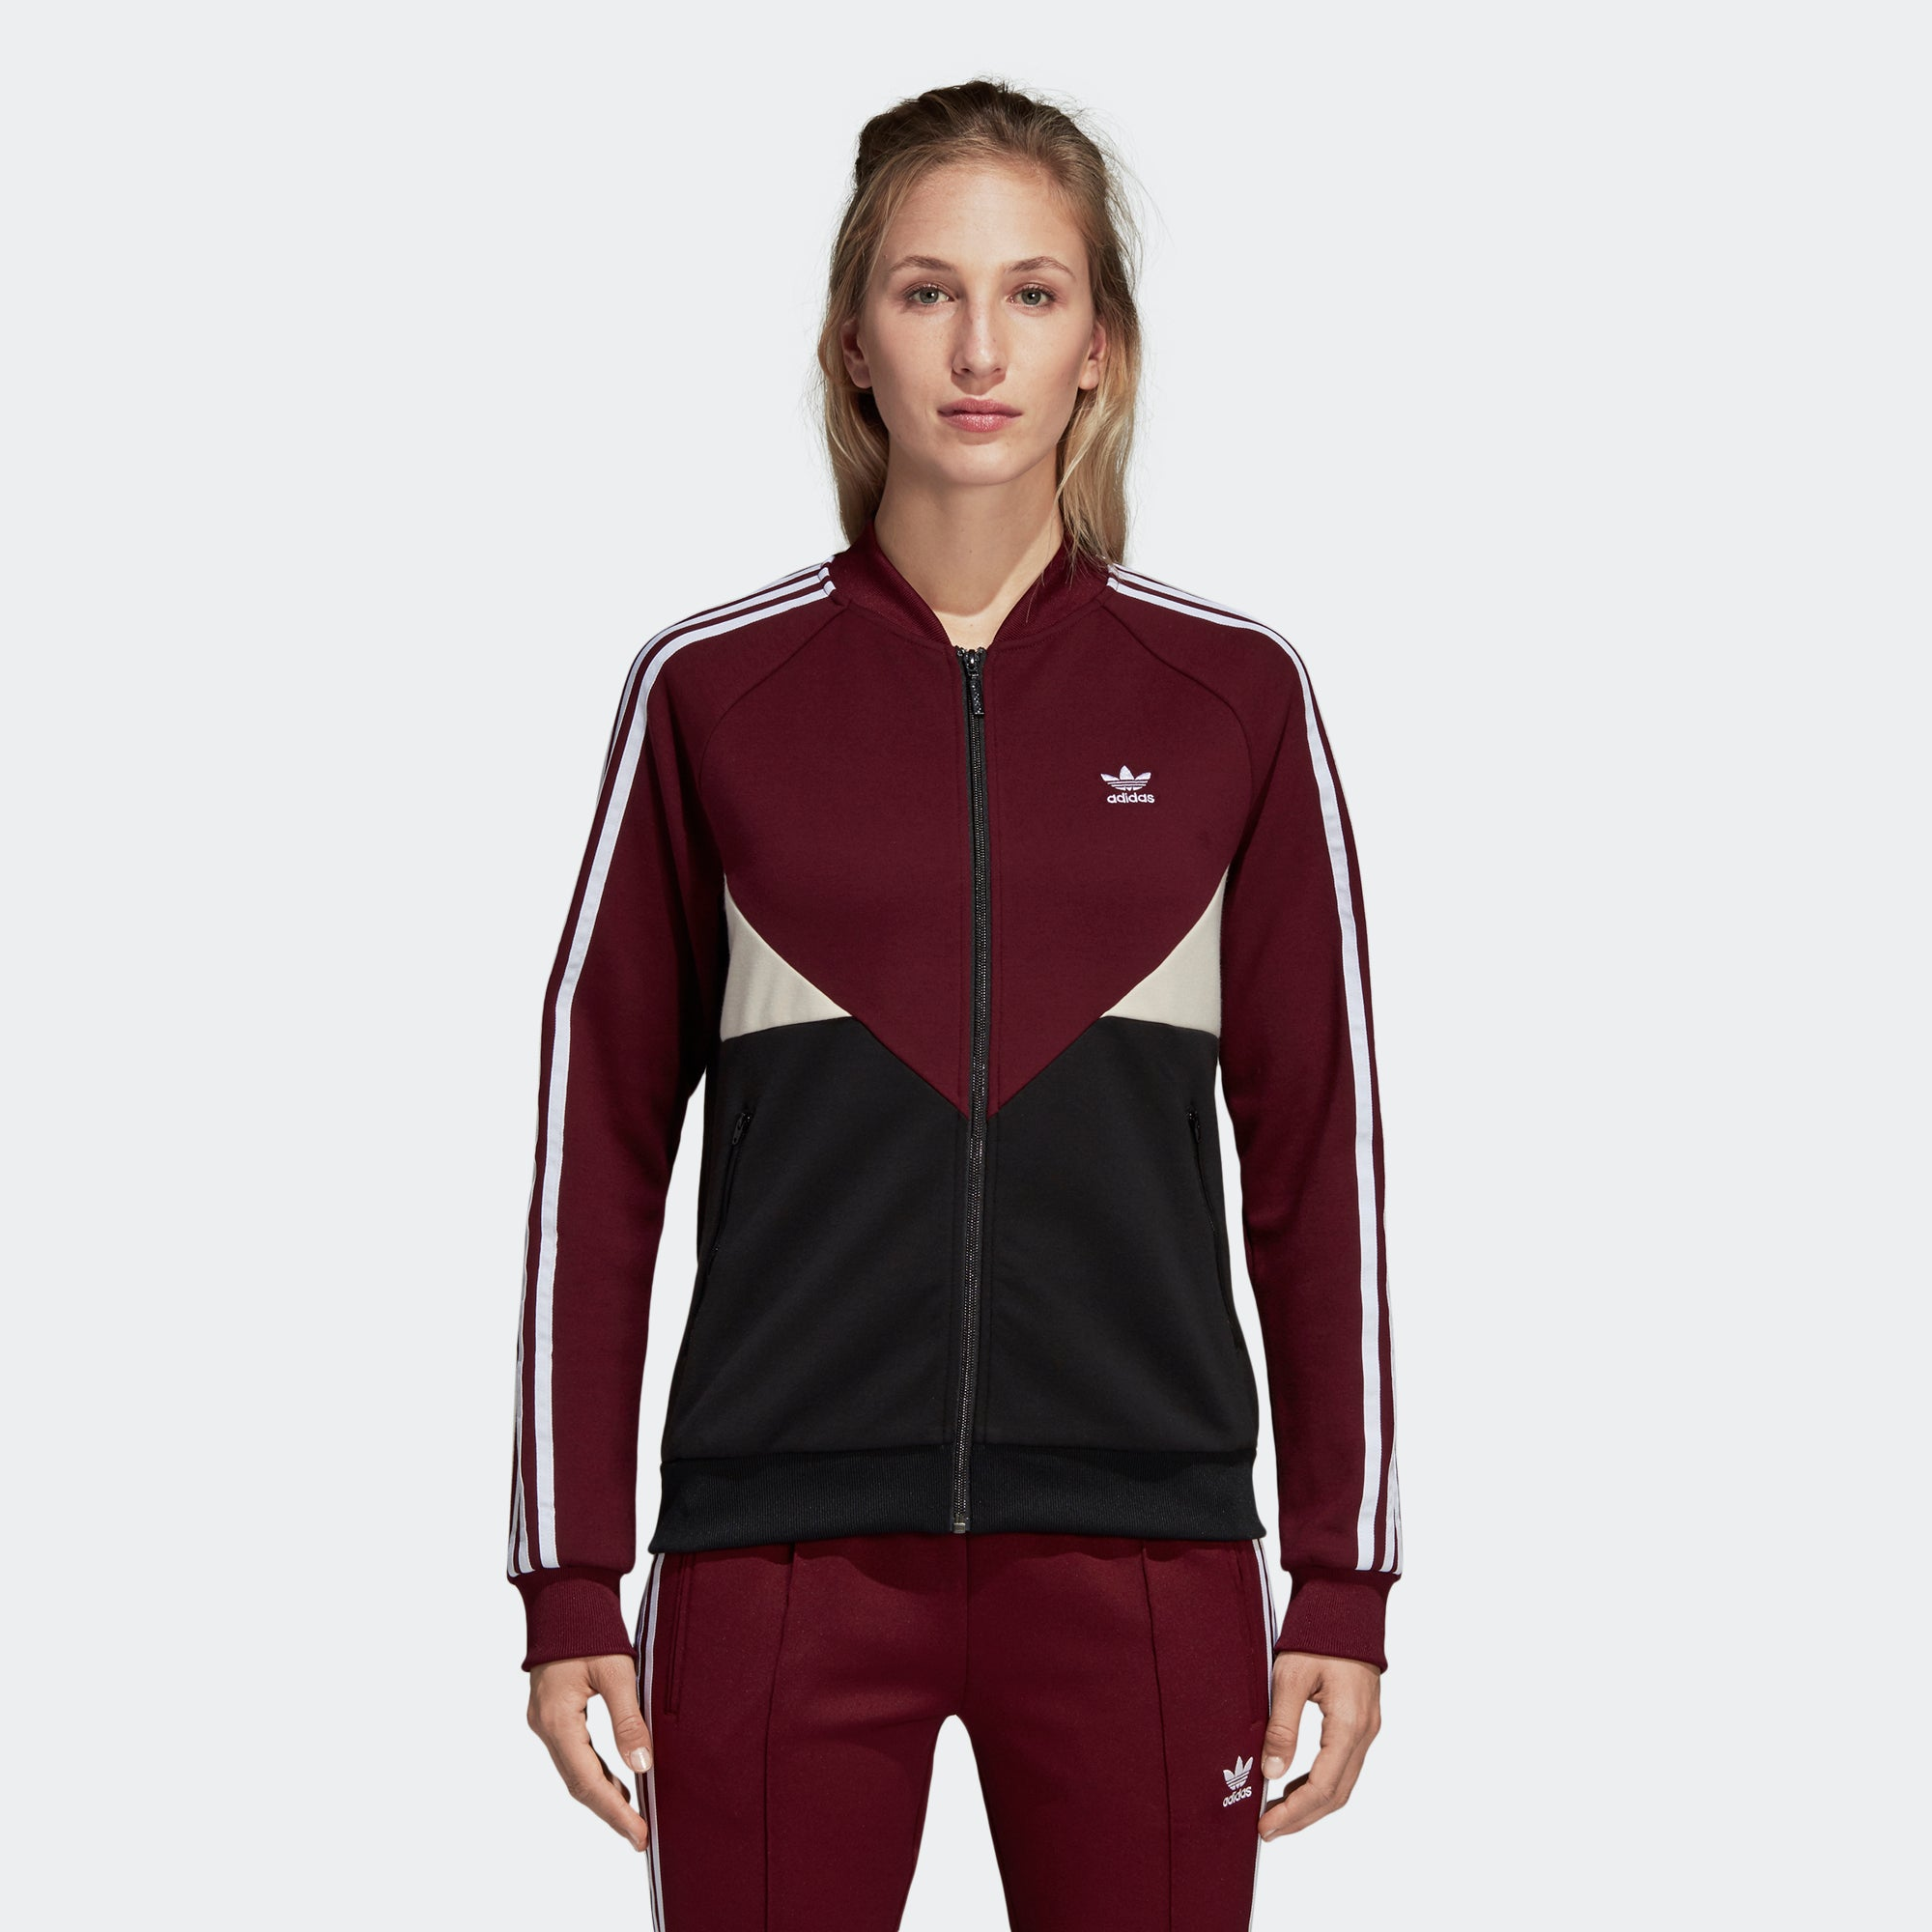 adidas CLRDO Track Jacket Red DH3002 | Chicago City Sports